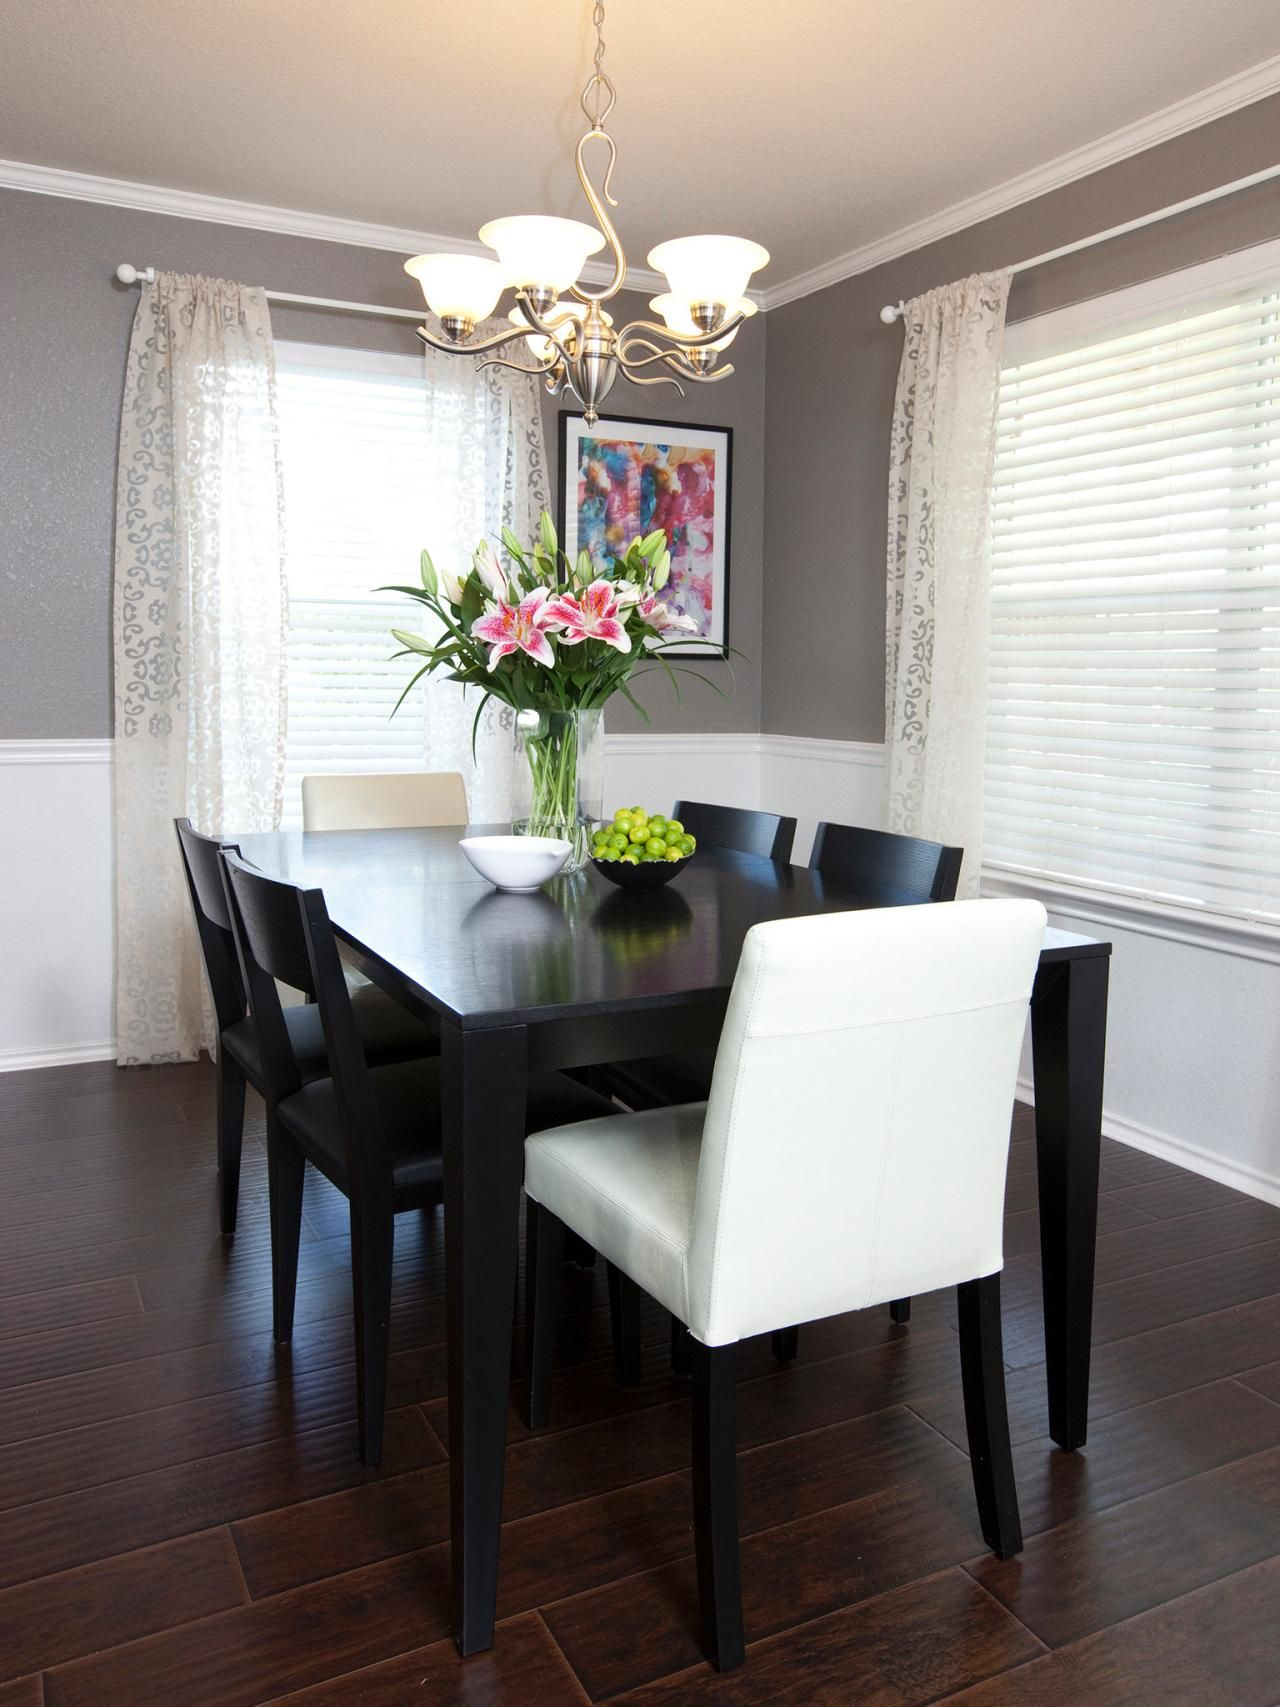 Chair Rail Molding Divides Twotoned Walls In This Neutral Dining Best Grey Dining Room Chairs Design Ideas